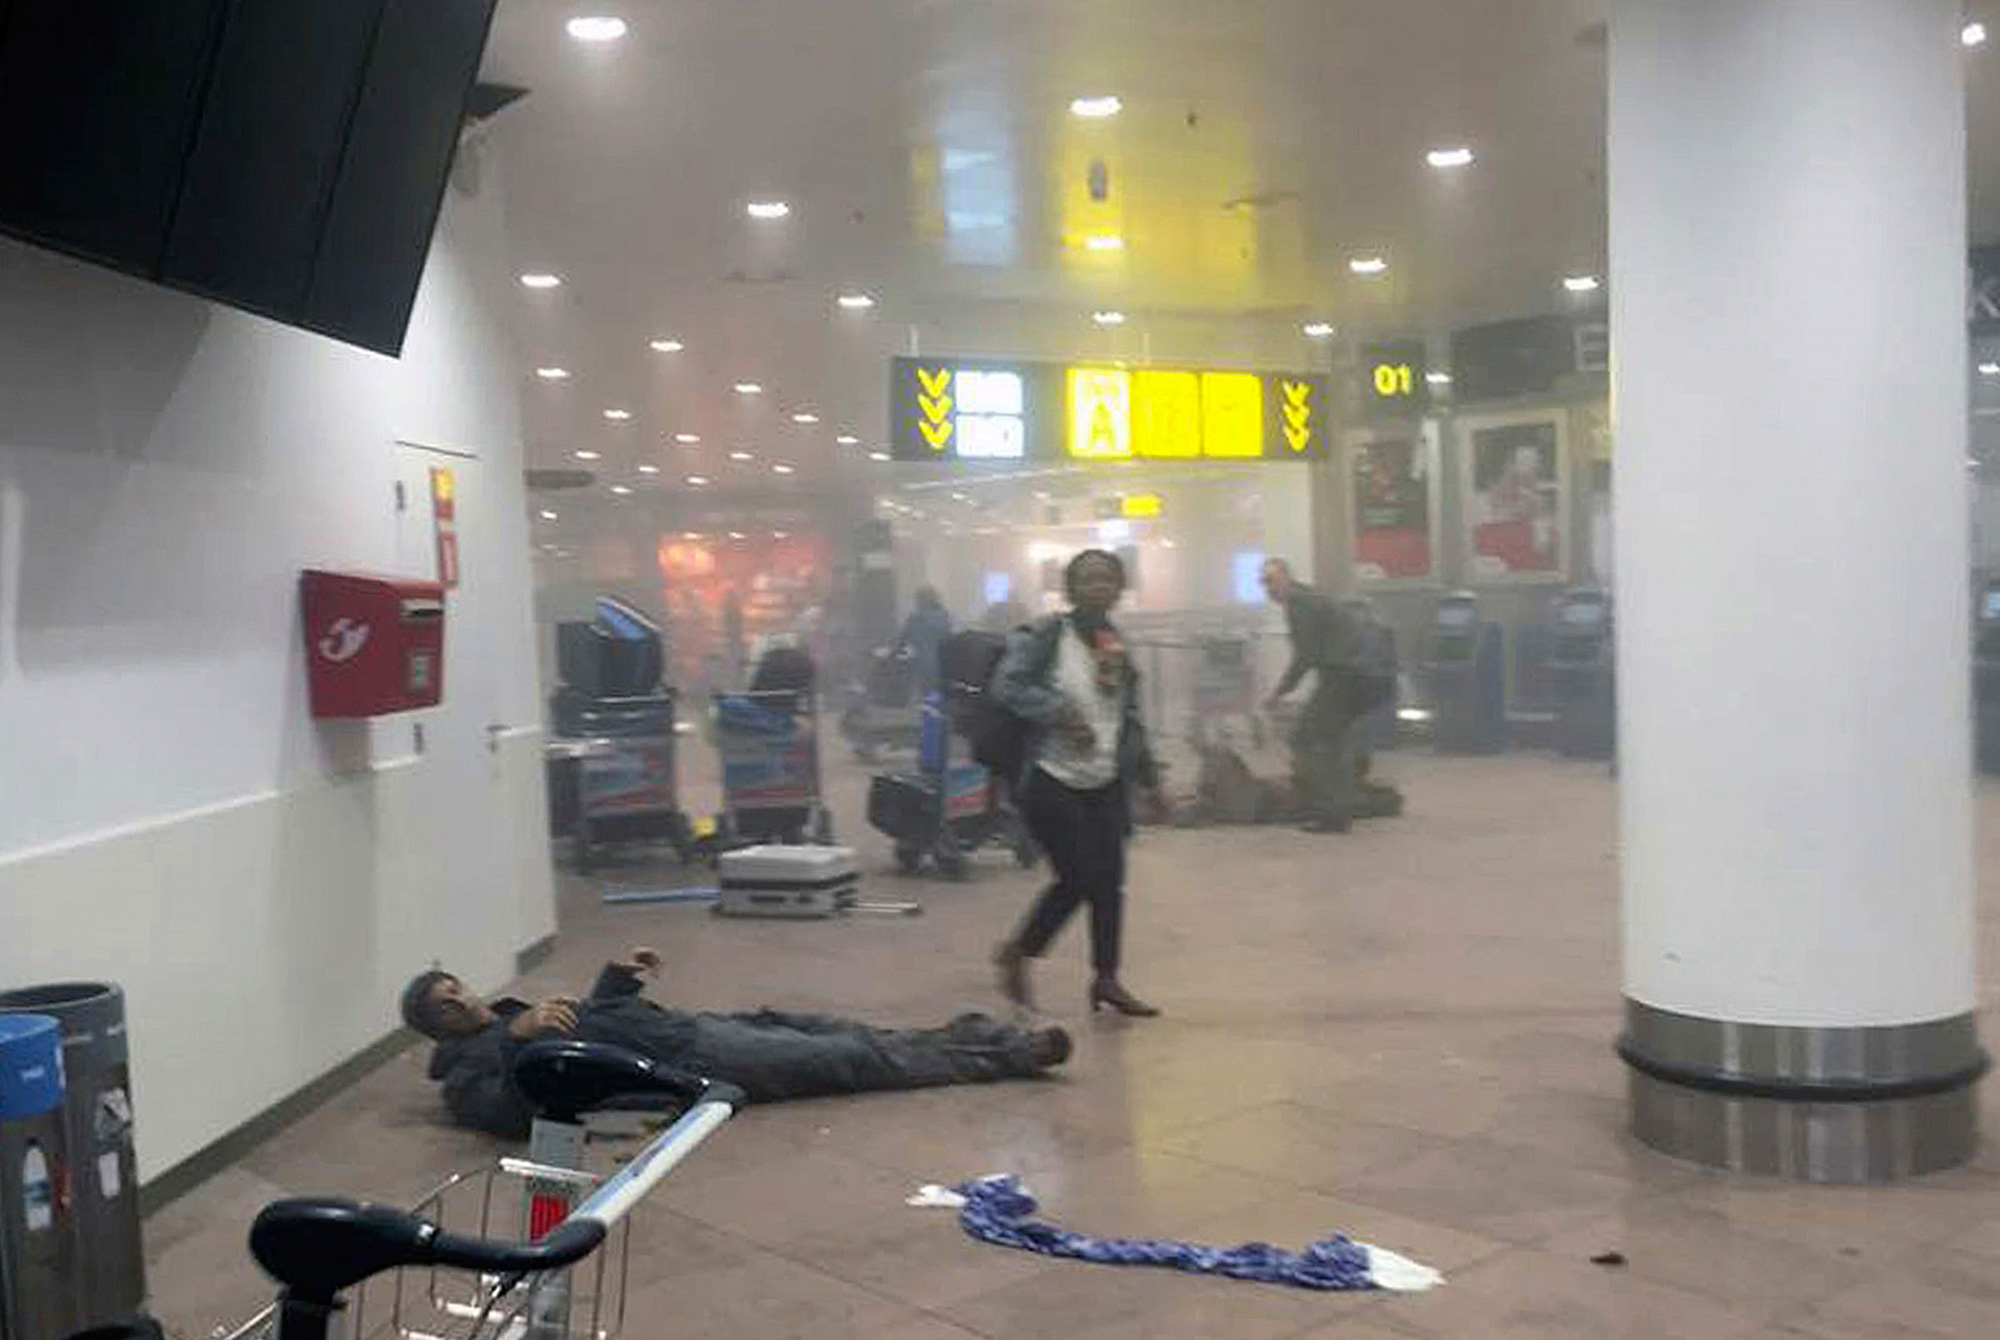 A wounded man lays on the ground after a bomb blast at the airport in Brussels on March 22, 2016